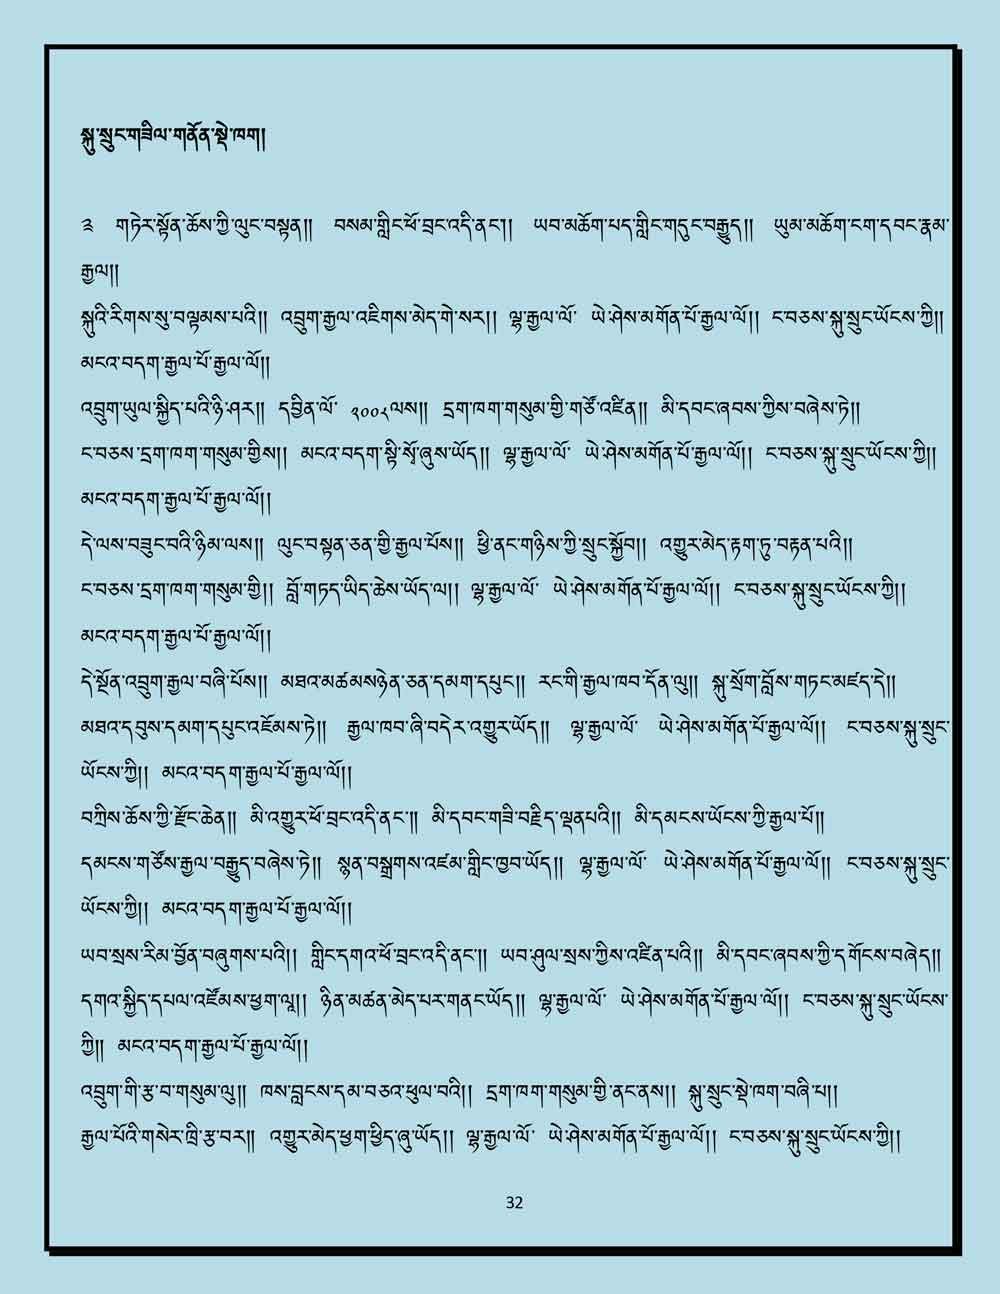 Ap-Tseten-Lyrics-32.jpg